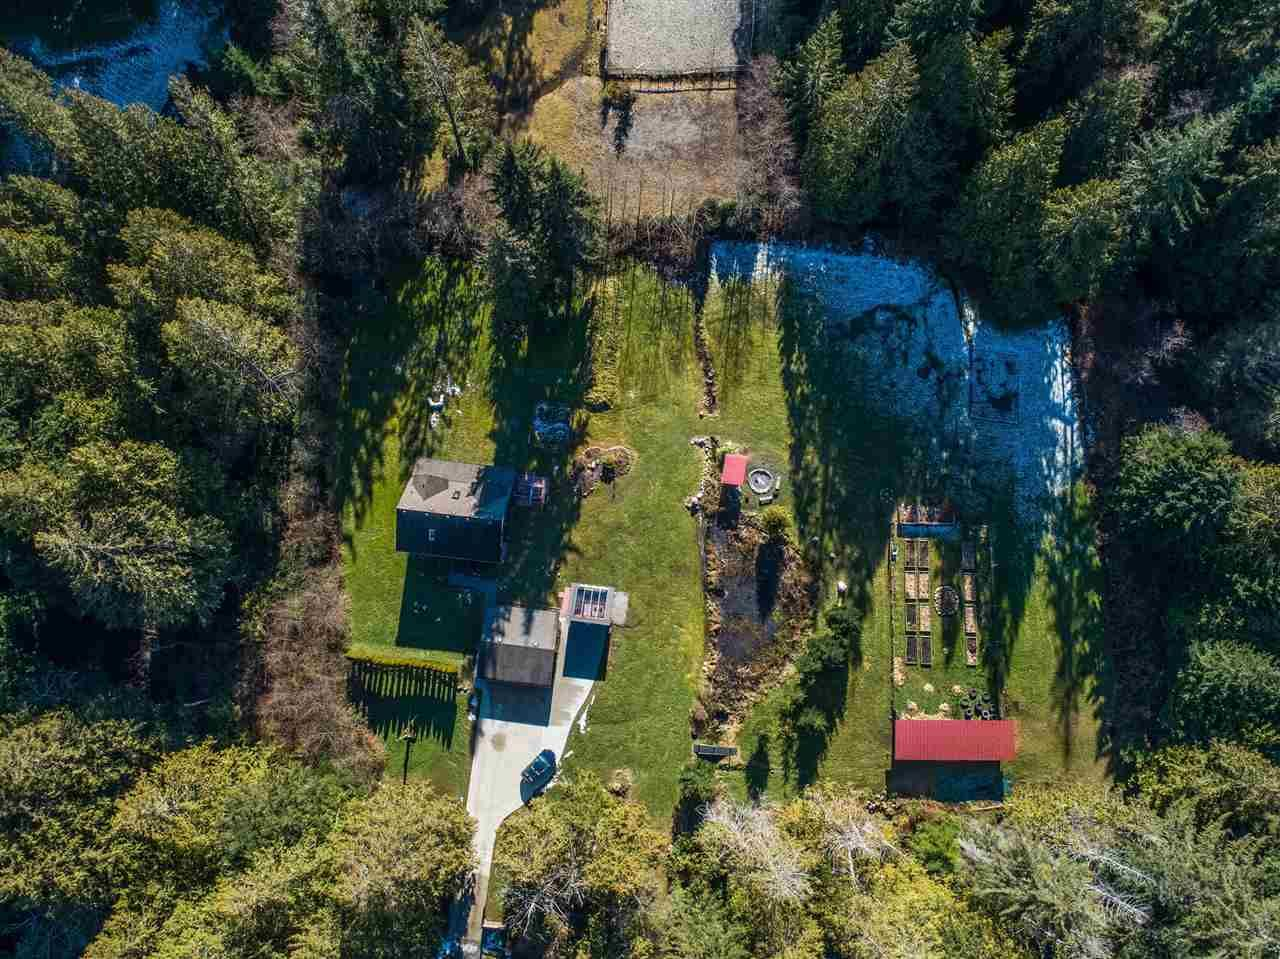 1215 Chaster Rd. 2 acres in central Gibsons - close to all amenities but feels like country!  Hobby farm, gardeners dream, equestrian estate; possibility to subdivide. Ask for information package.